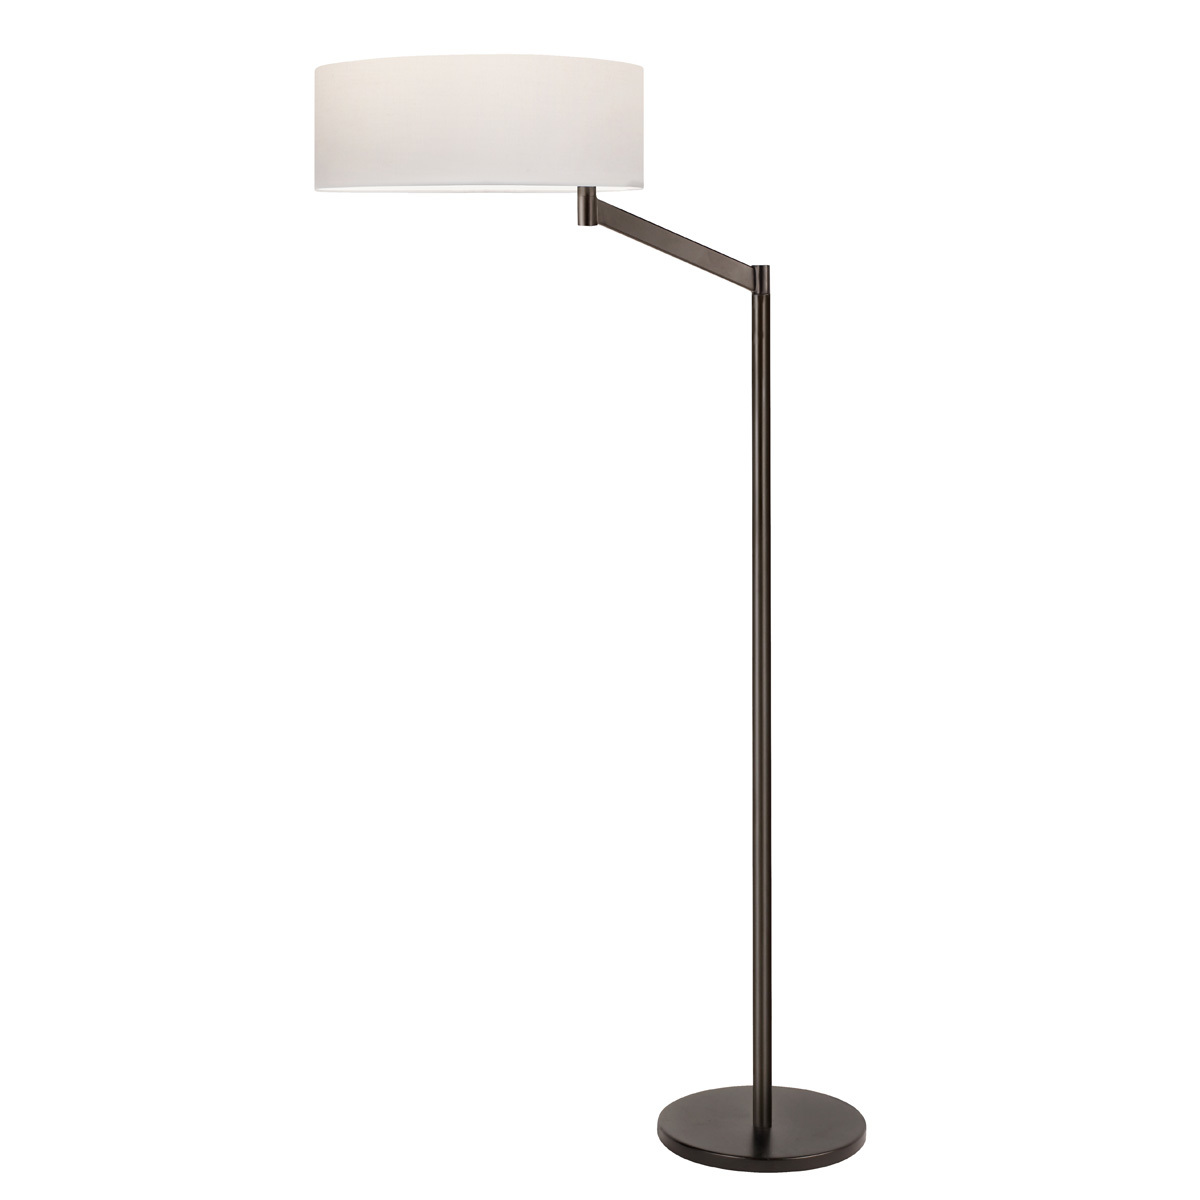 Sonneman 7083.27 Perch Reading Lamp in Coffee Bronze